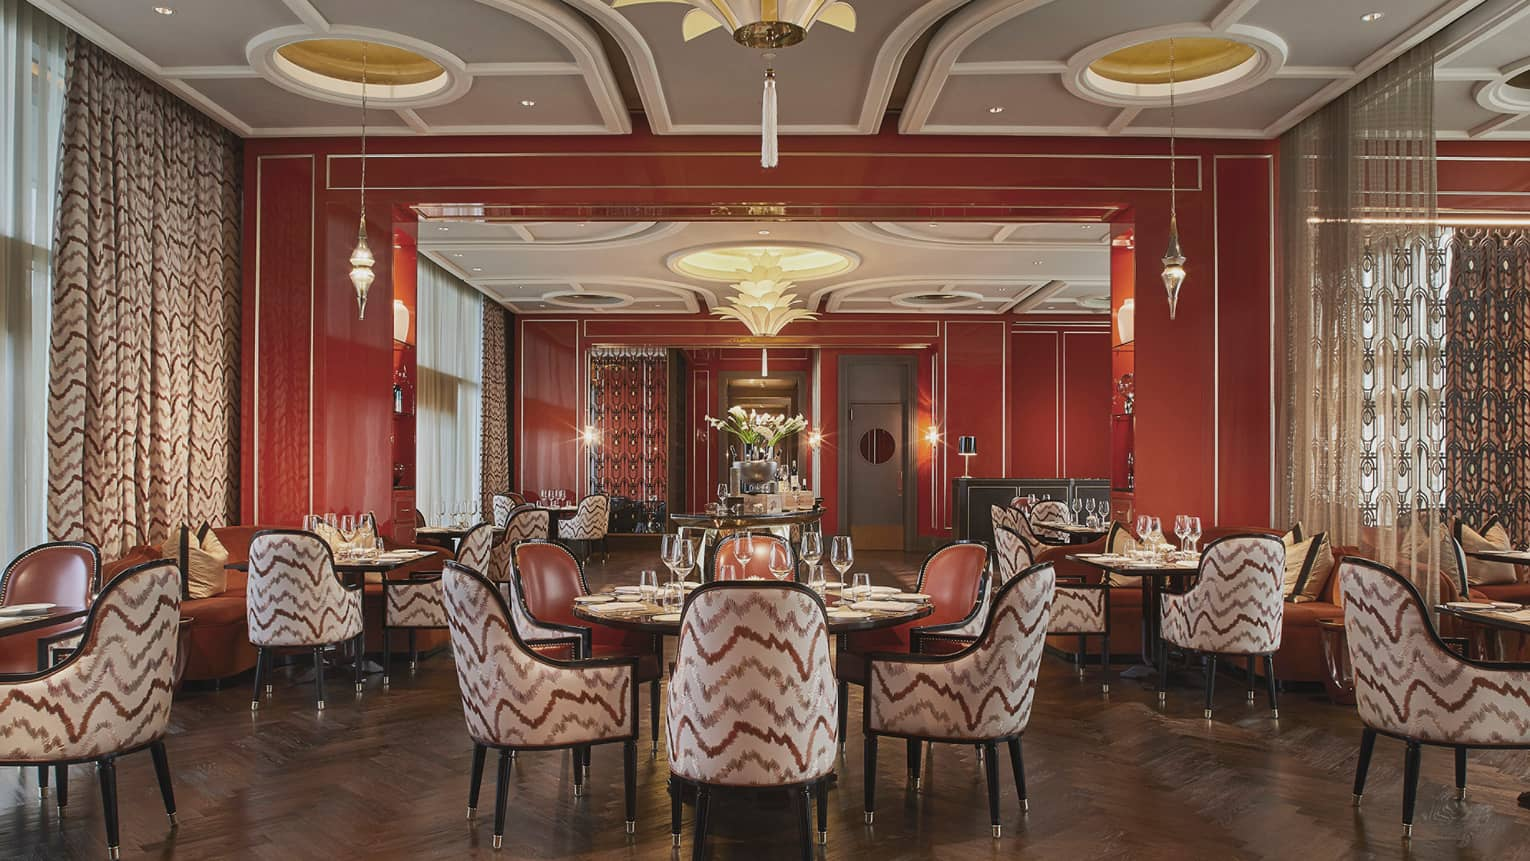 Alto restaurant dining room, each round table has four arm chairs, stylish geometric paterns